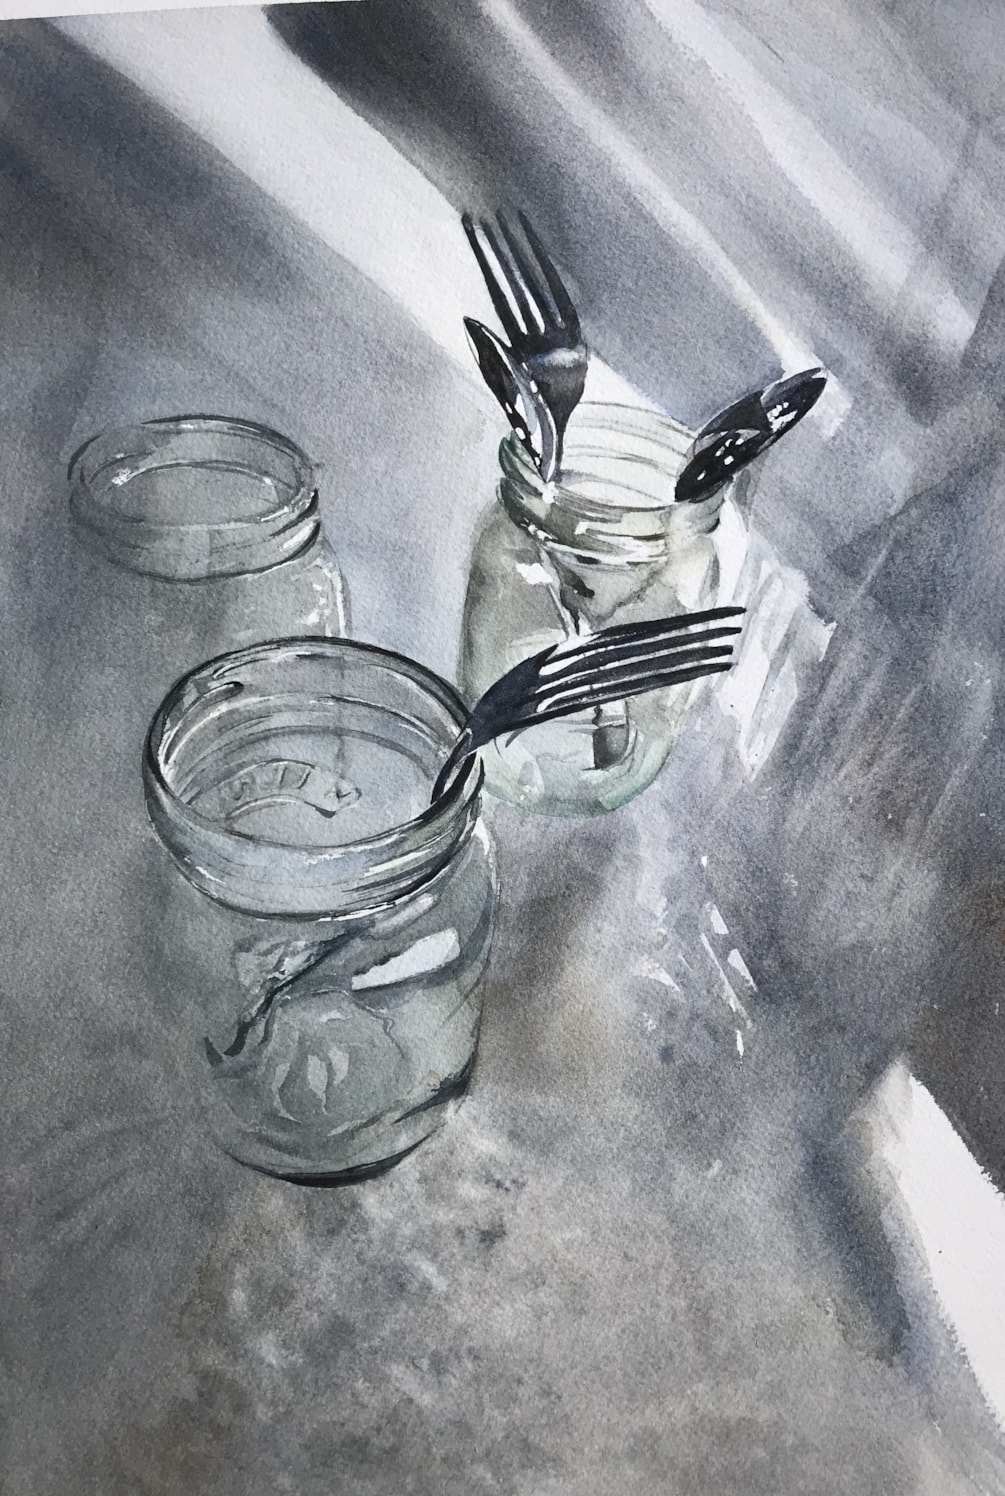 Jars in the sink with a couple of forks and spoons.